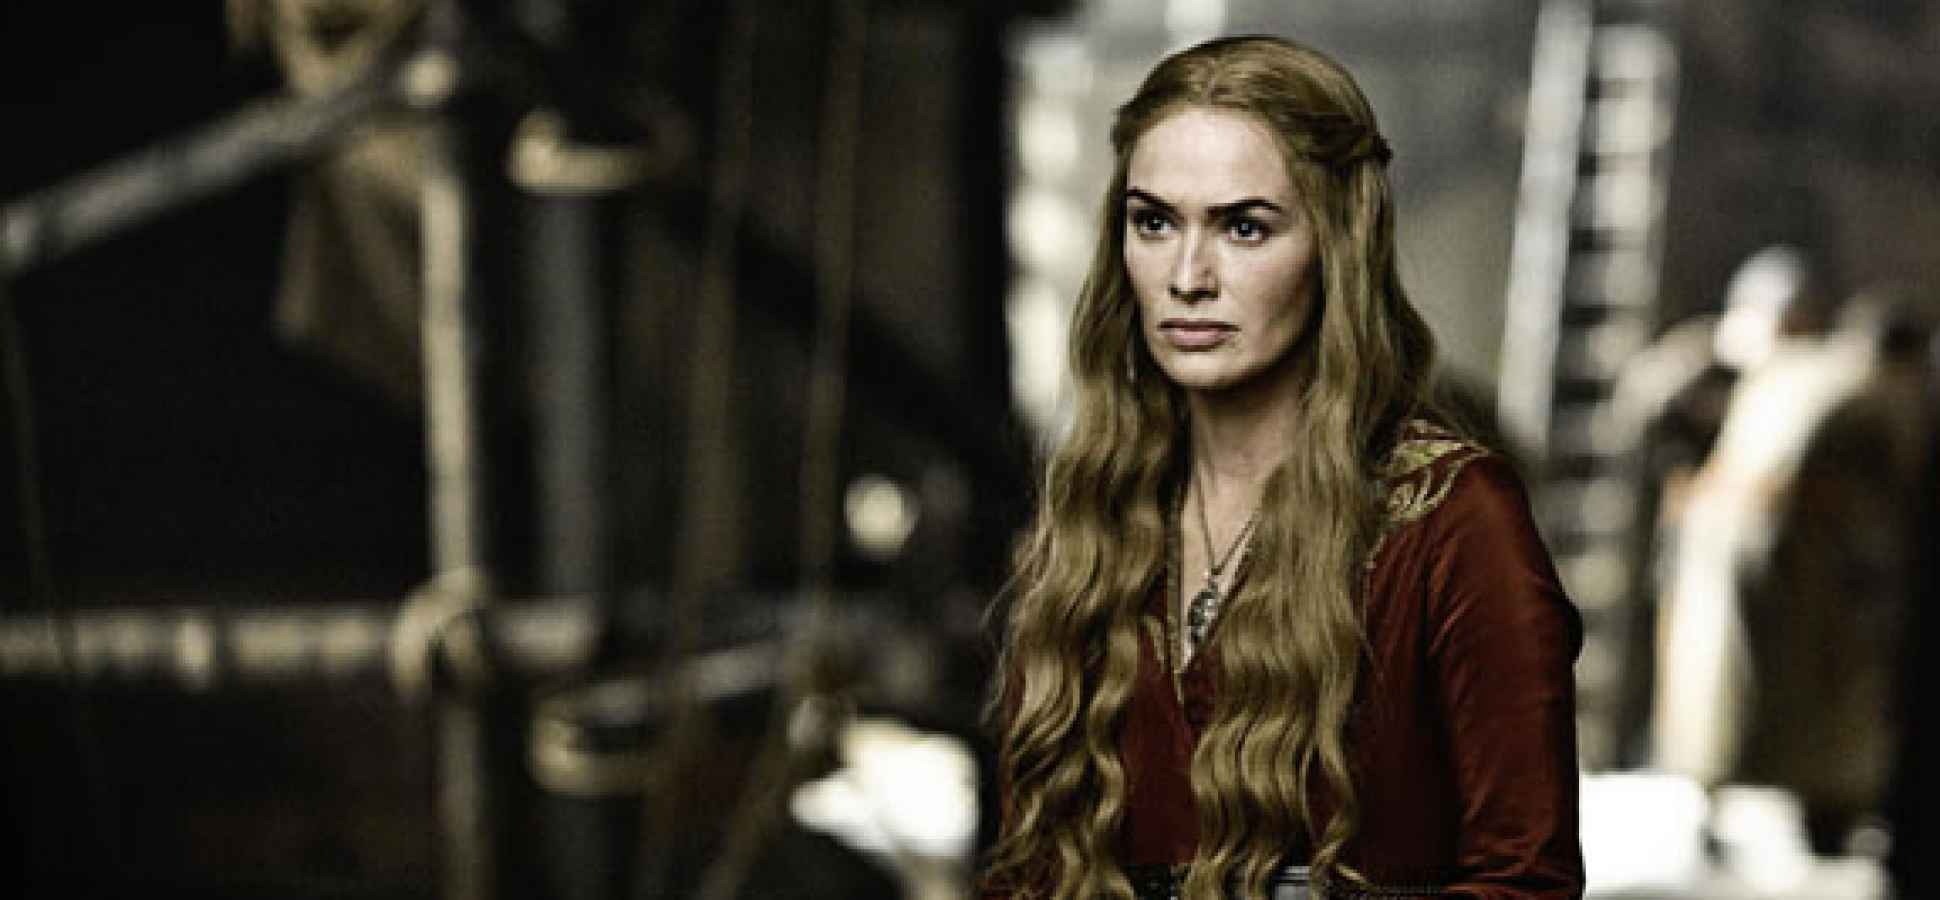 8 Business Lessons From Game of Thrones